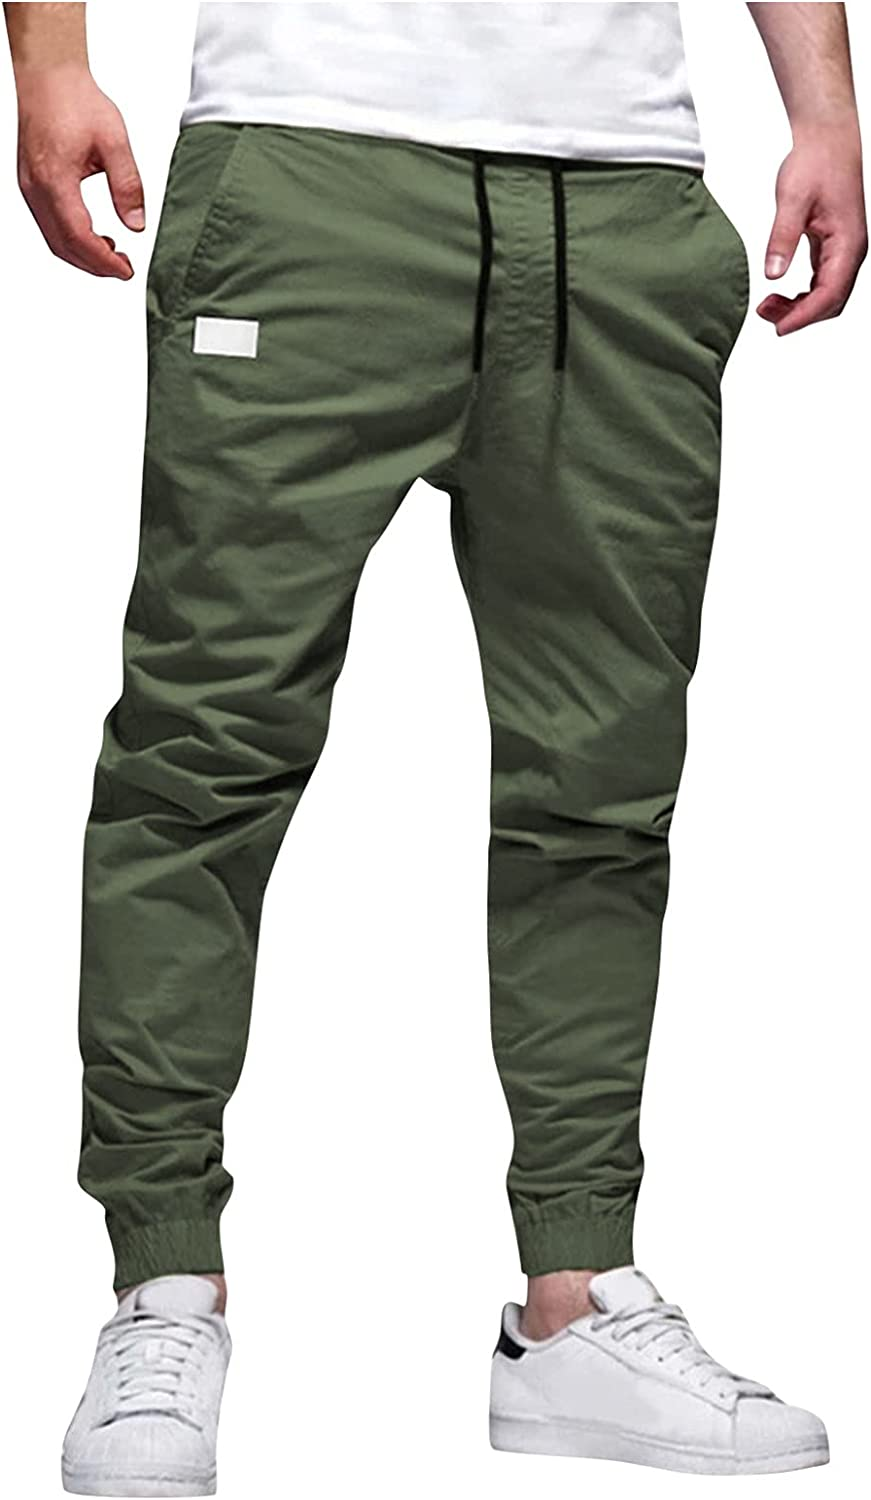 Burband Mens Jogger Pants Casual Outdoor Hiking Ripstop Tactical Cargo Pants Slim Fit Tapered Pencil Pants